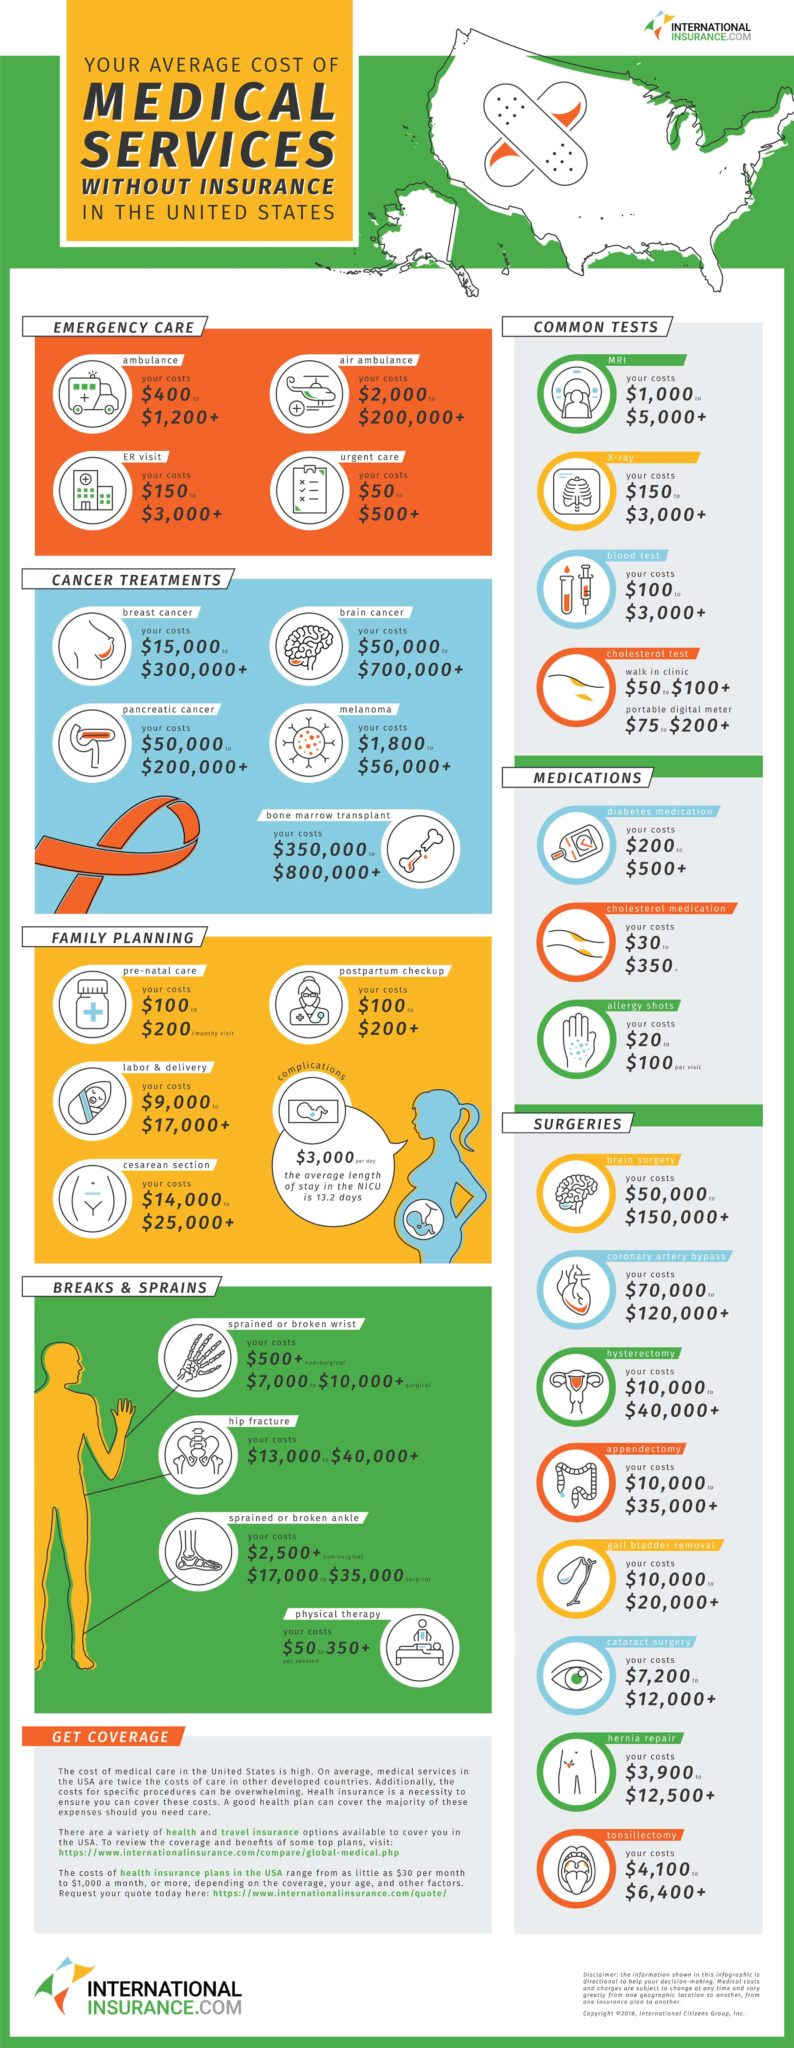 Cost of Medical Care in the USA Infographic. Lists costs including emergency care, cancer care, appendectomies, maternity costs, ambulance costs, medications, surgeries, and breaks and sprains